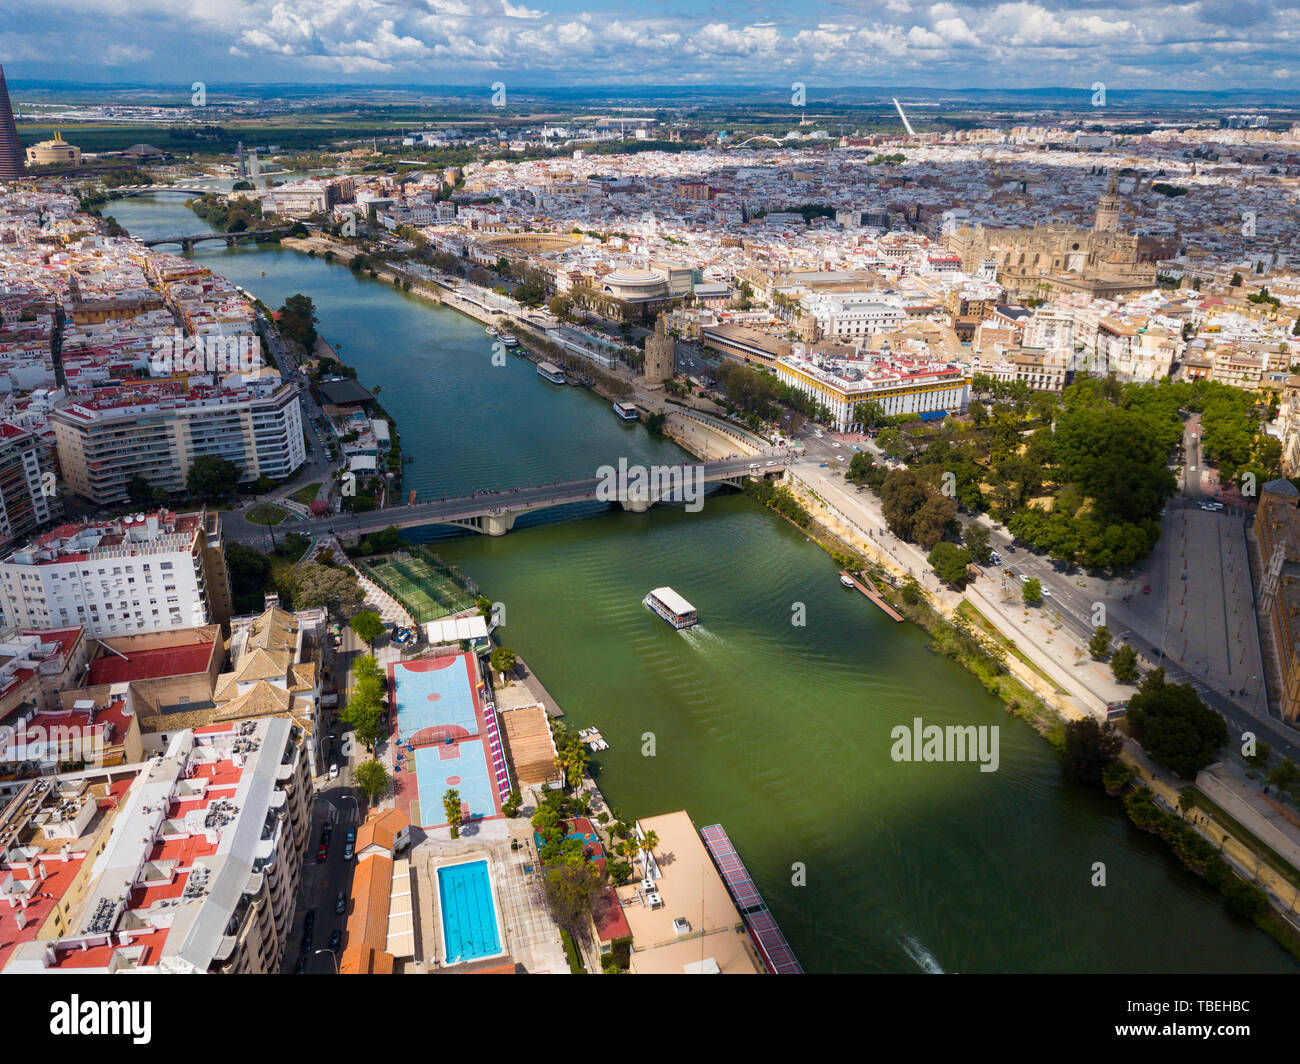 Aerial panoramic view of modern cityscape of Seville with